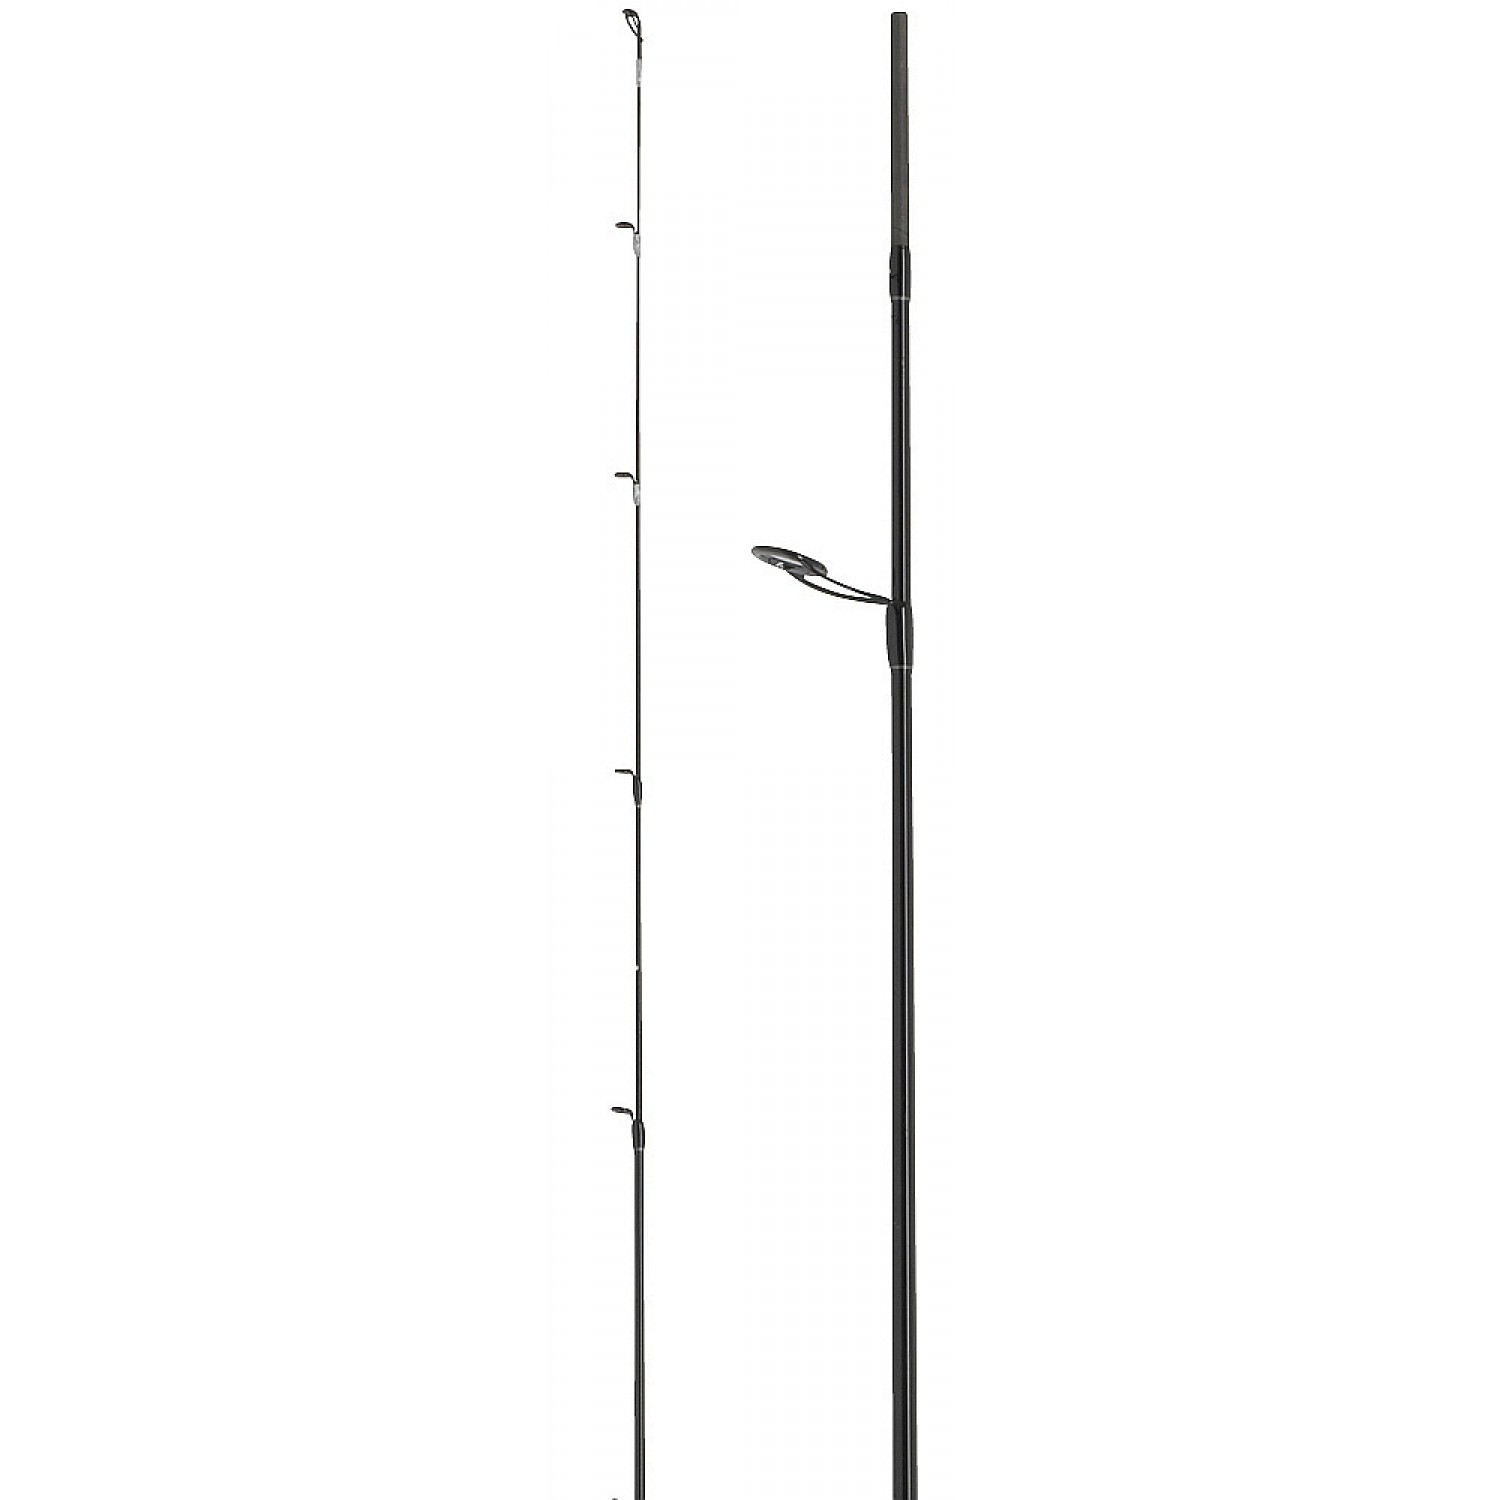 WFT Penzill Black Spear Vertical Spin 1.90m, 12-48g